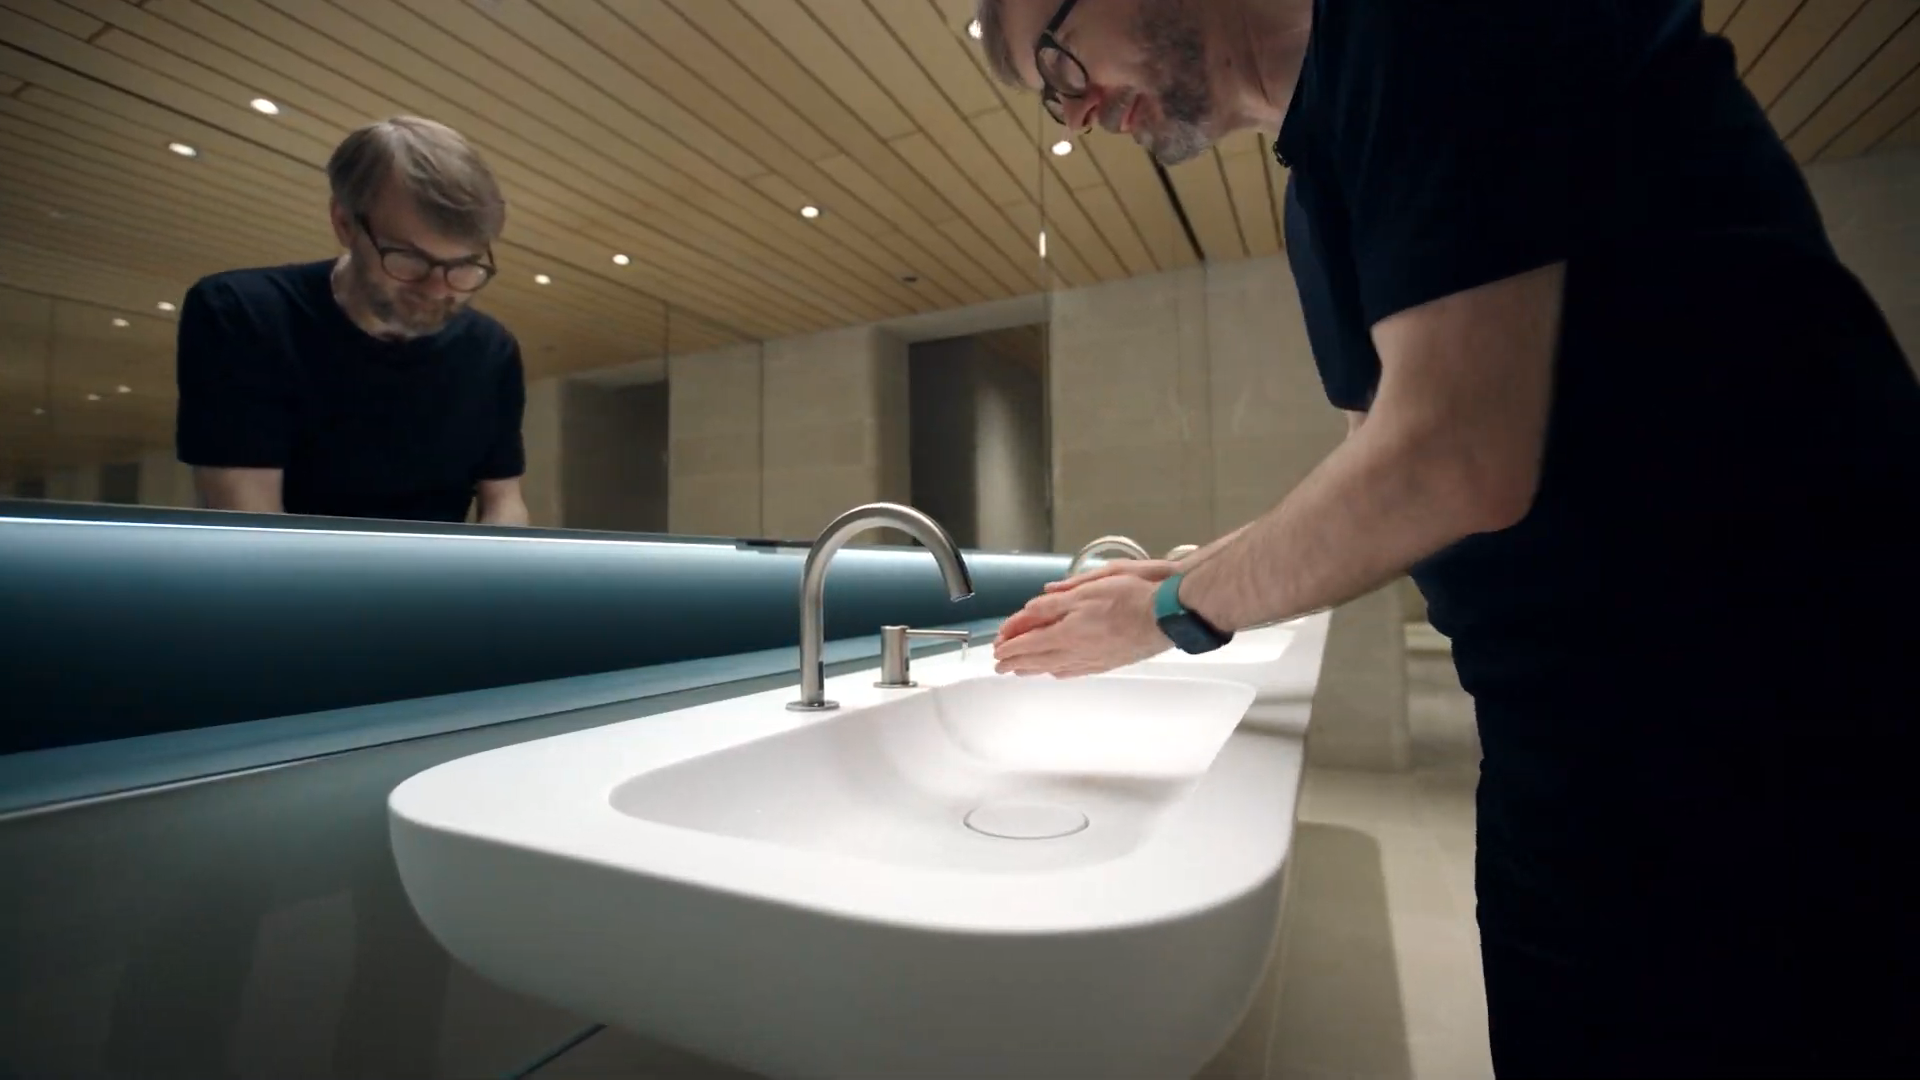 AI is behind Apple's handwashing assistance feature in the Apple Watch.